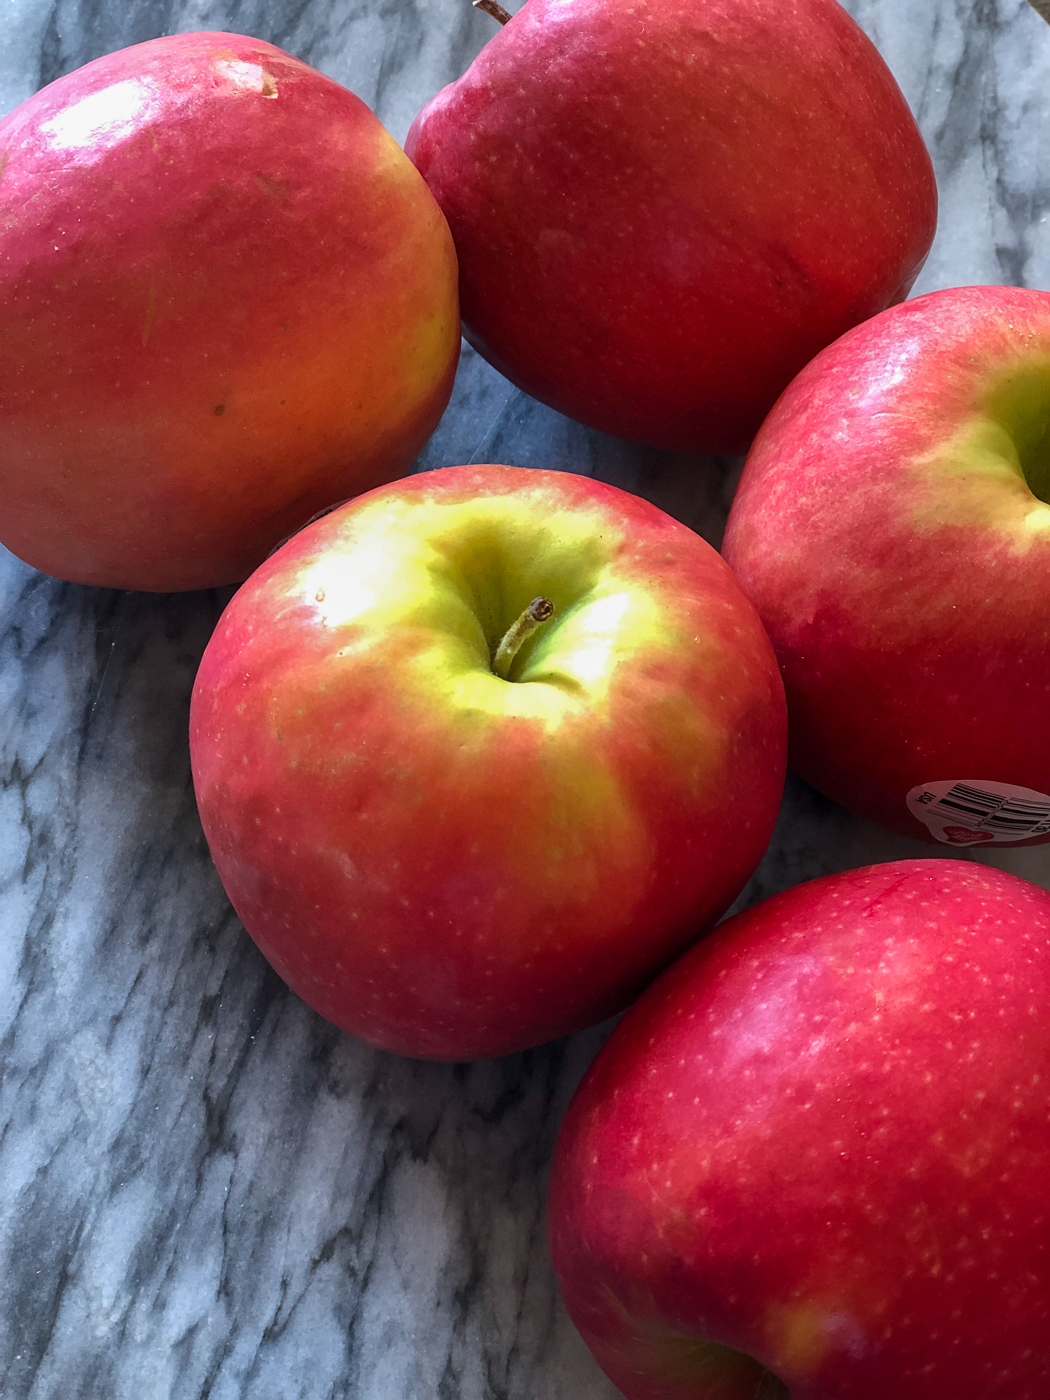 Meet Your Ingredients Cripps Pink/Pink Lady Apples